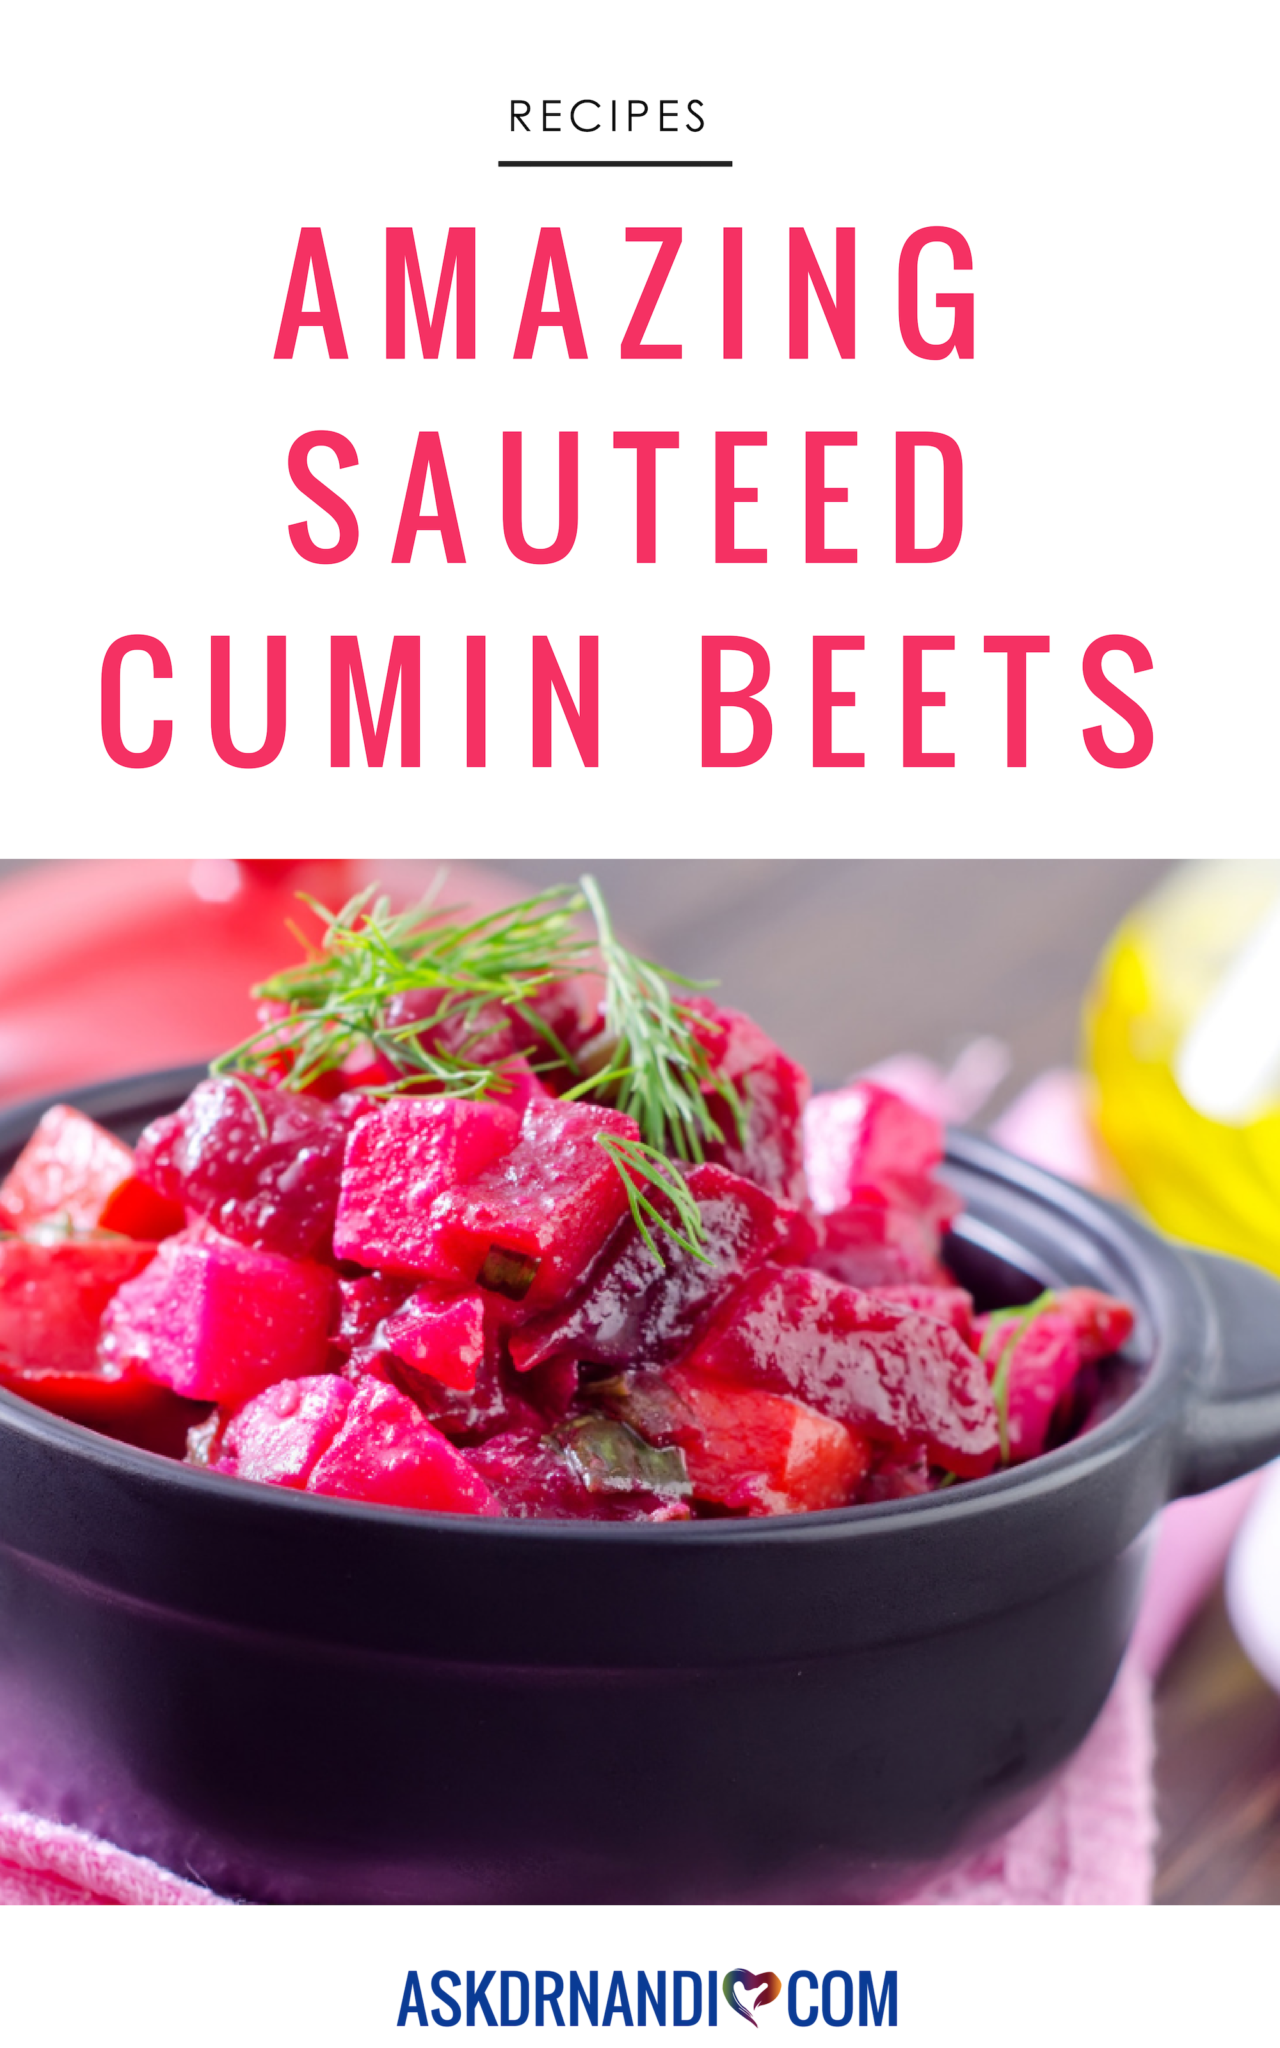 Cumin Beets to Boost Energy